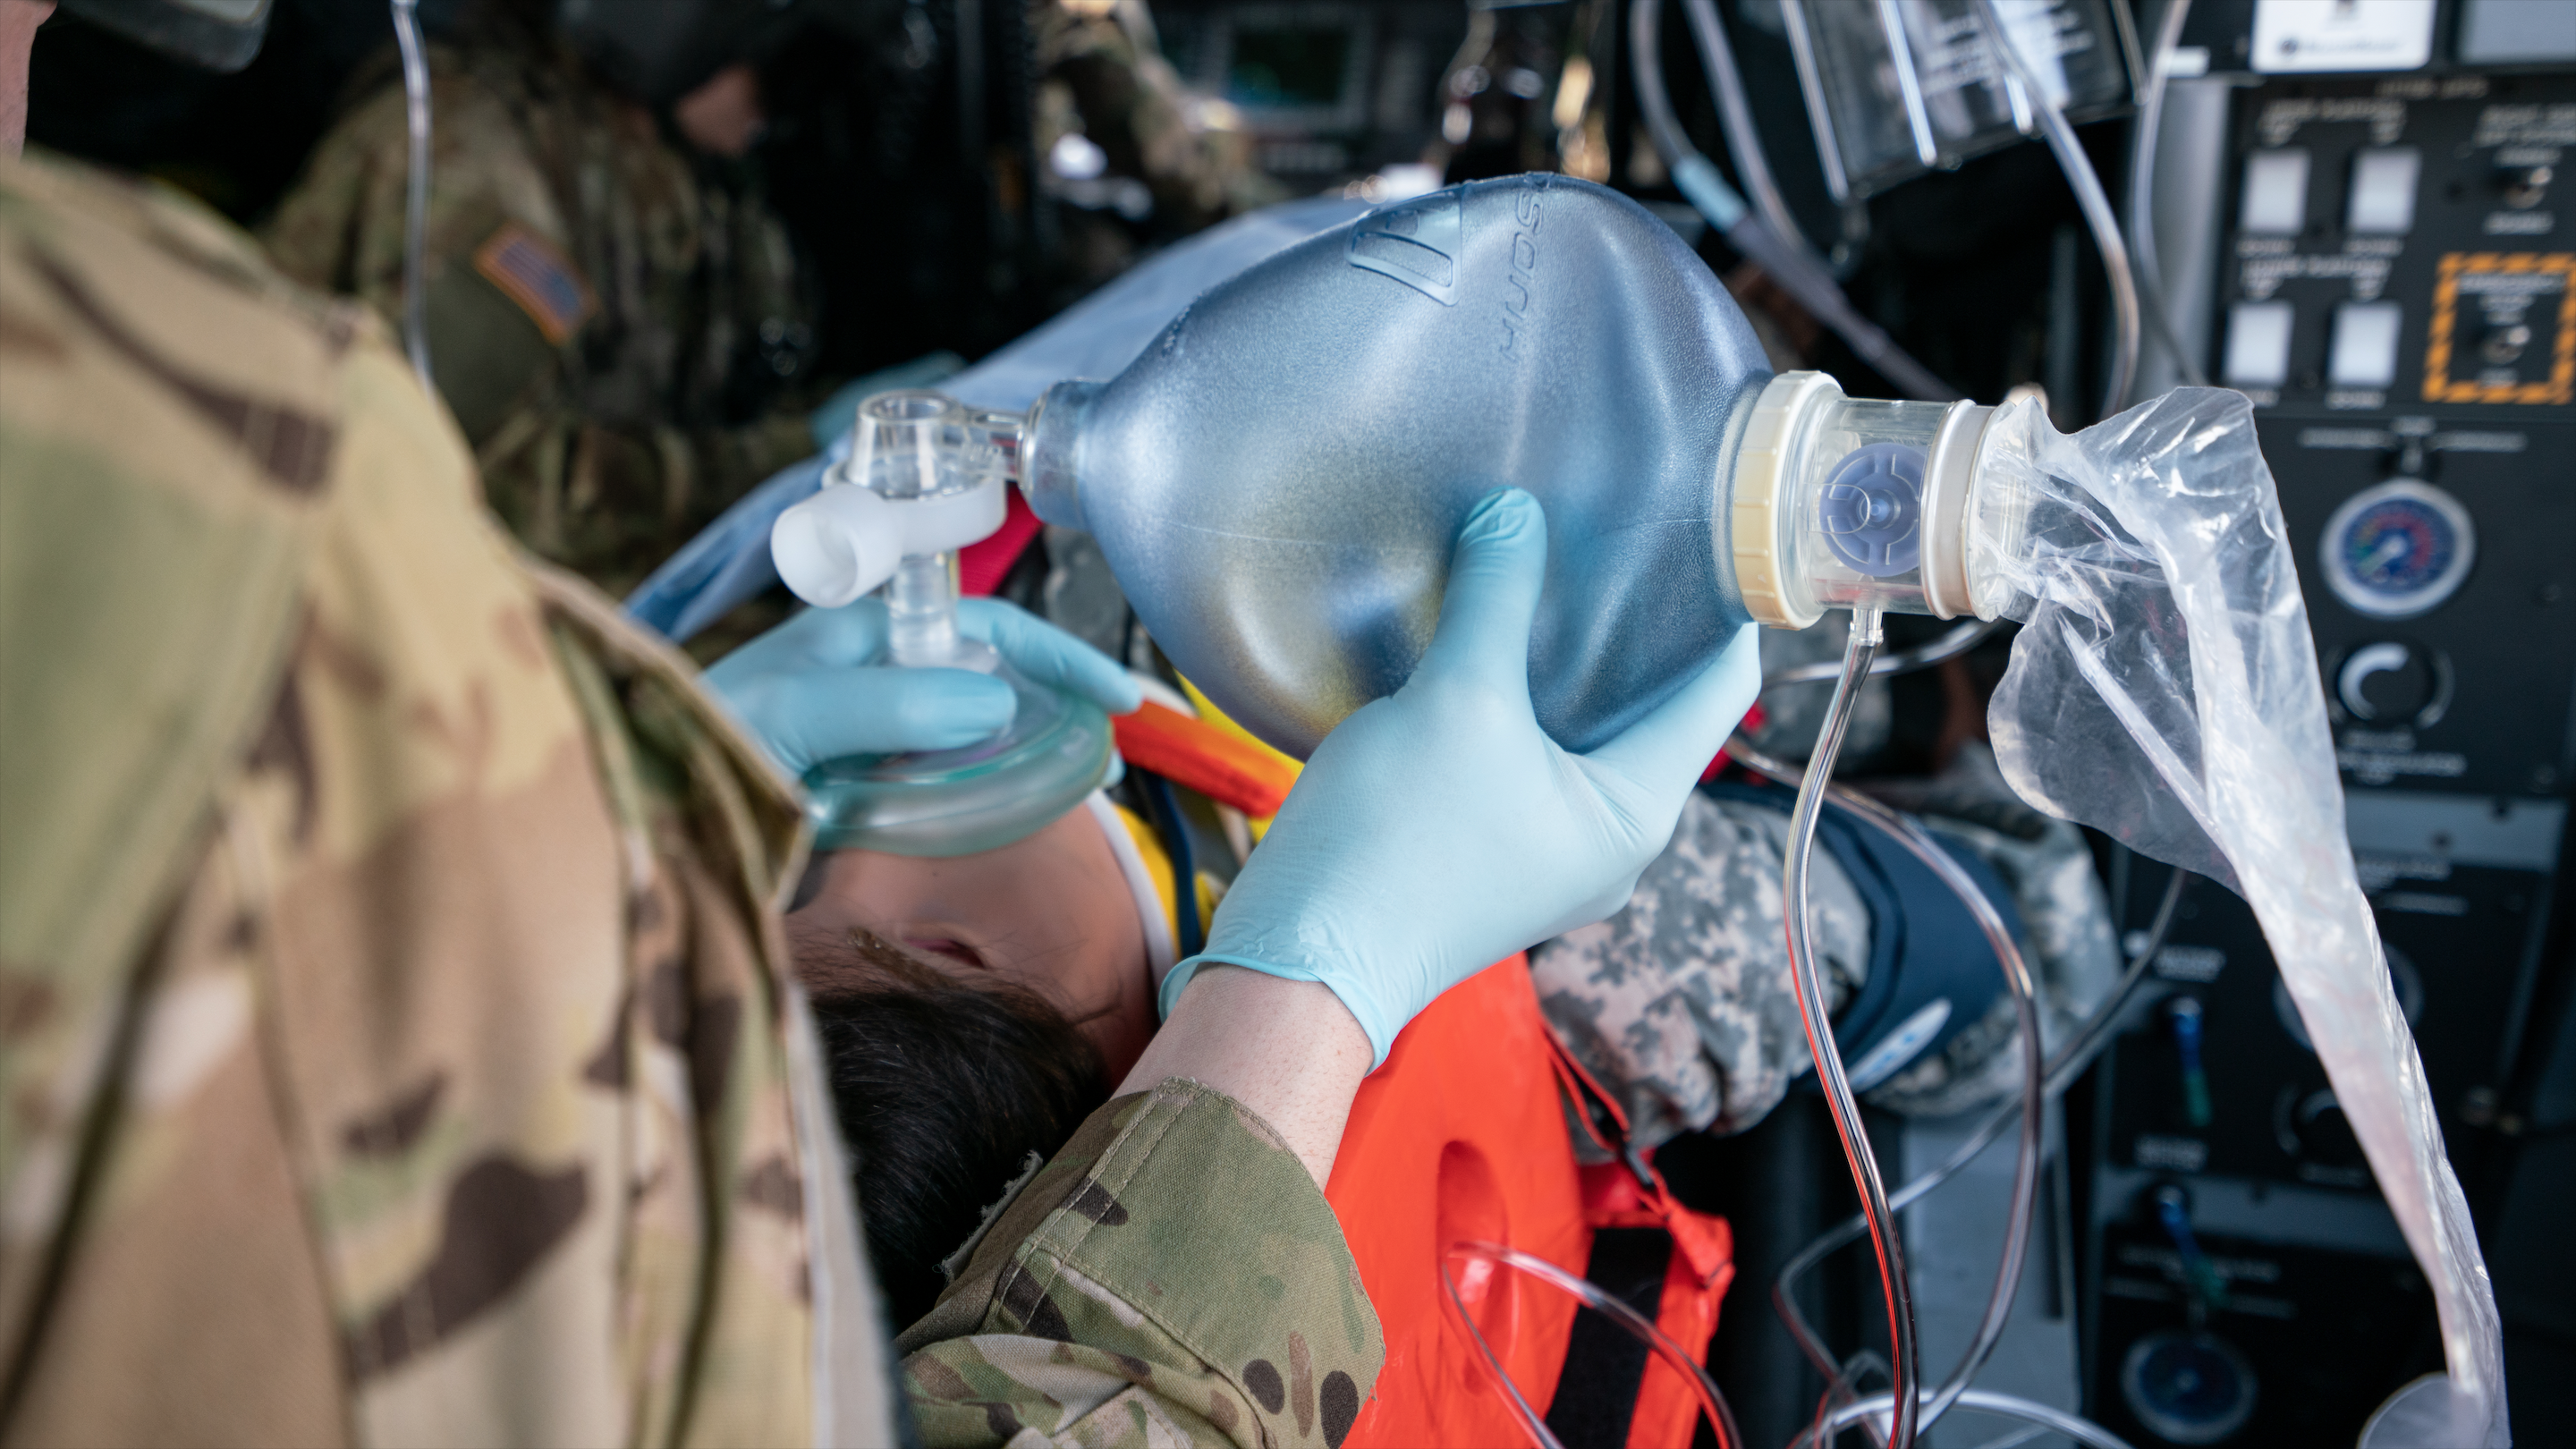 Soldier using Bag-Valve-Mask to ventilate a simulated trauma patient